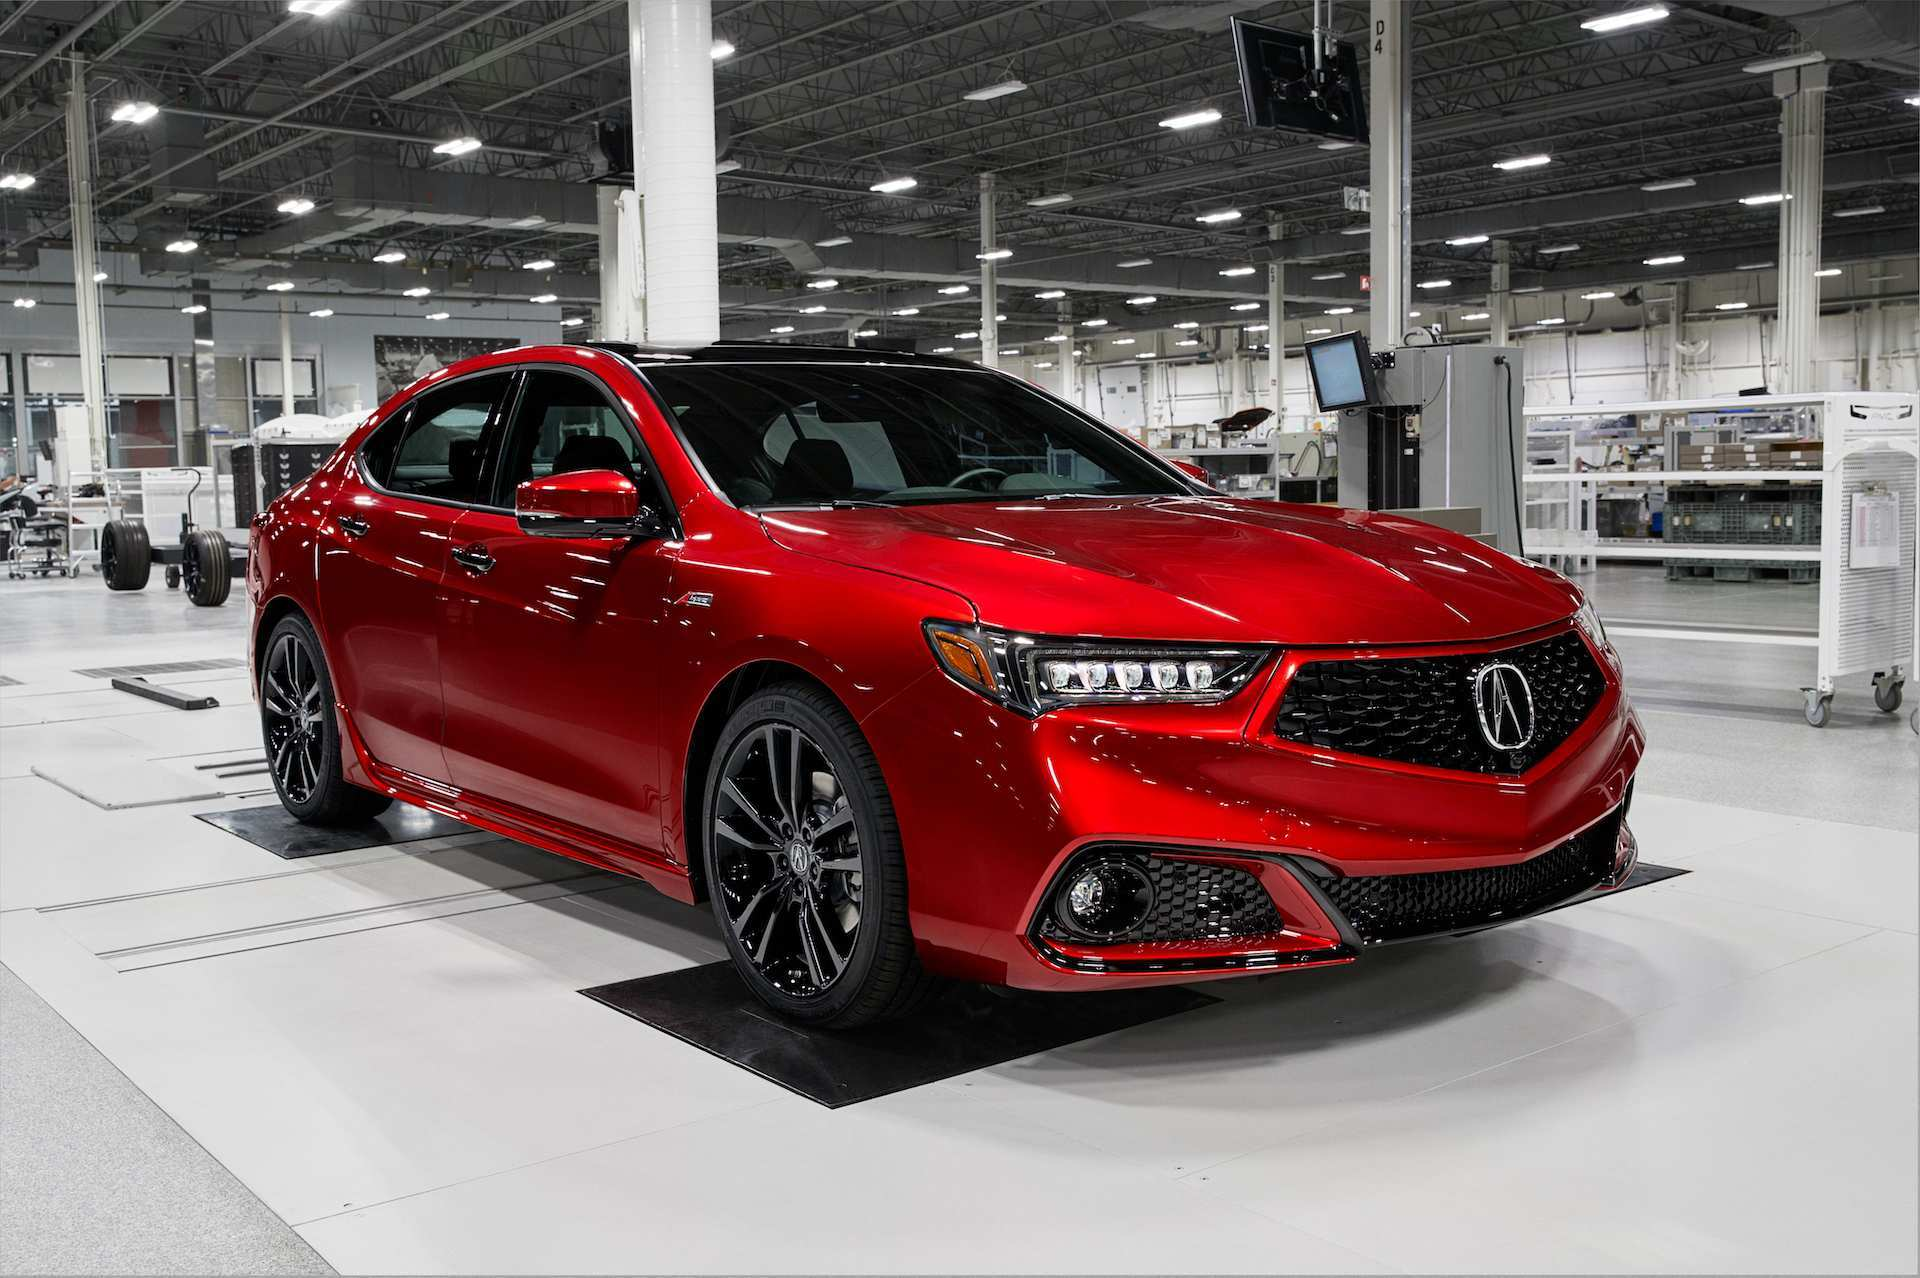 49 Gallery of Honda Acura 2020 Pricing with Honda Acura 2020